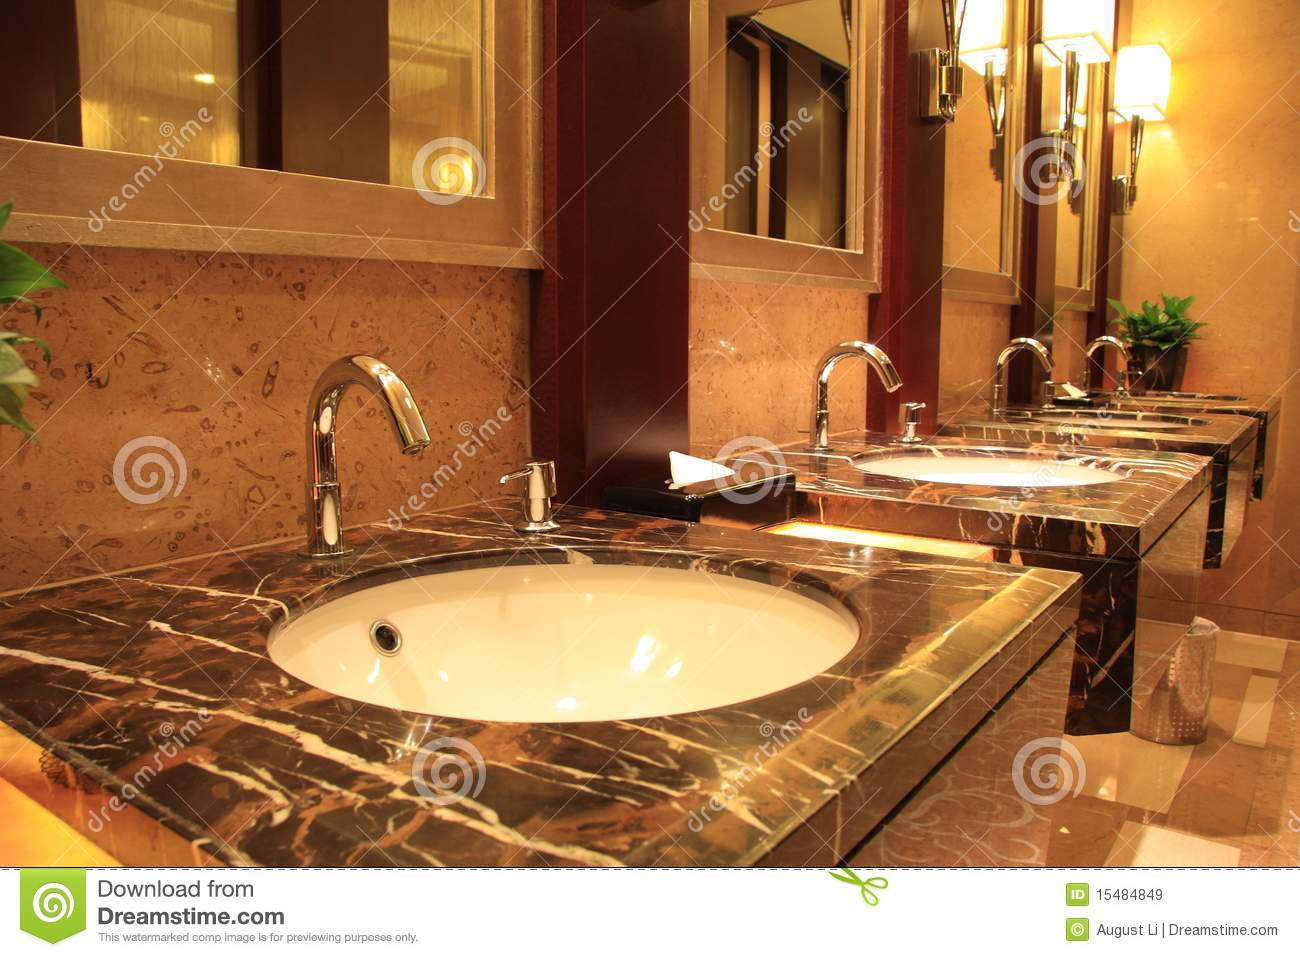 Interior Of A Luxury Public Restroom Mr No Pr No 4 1908 10